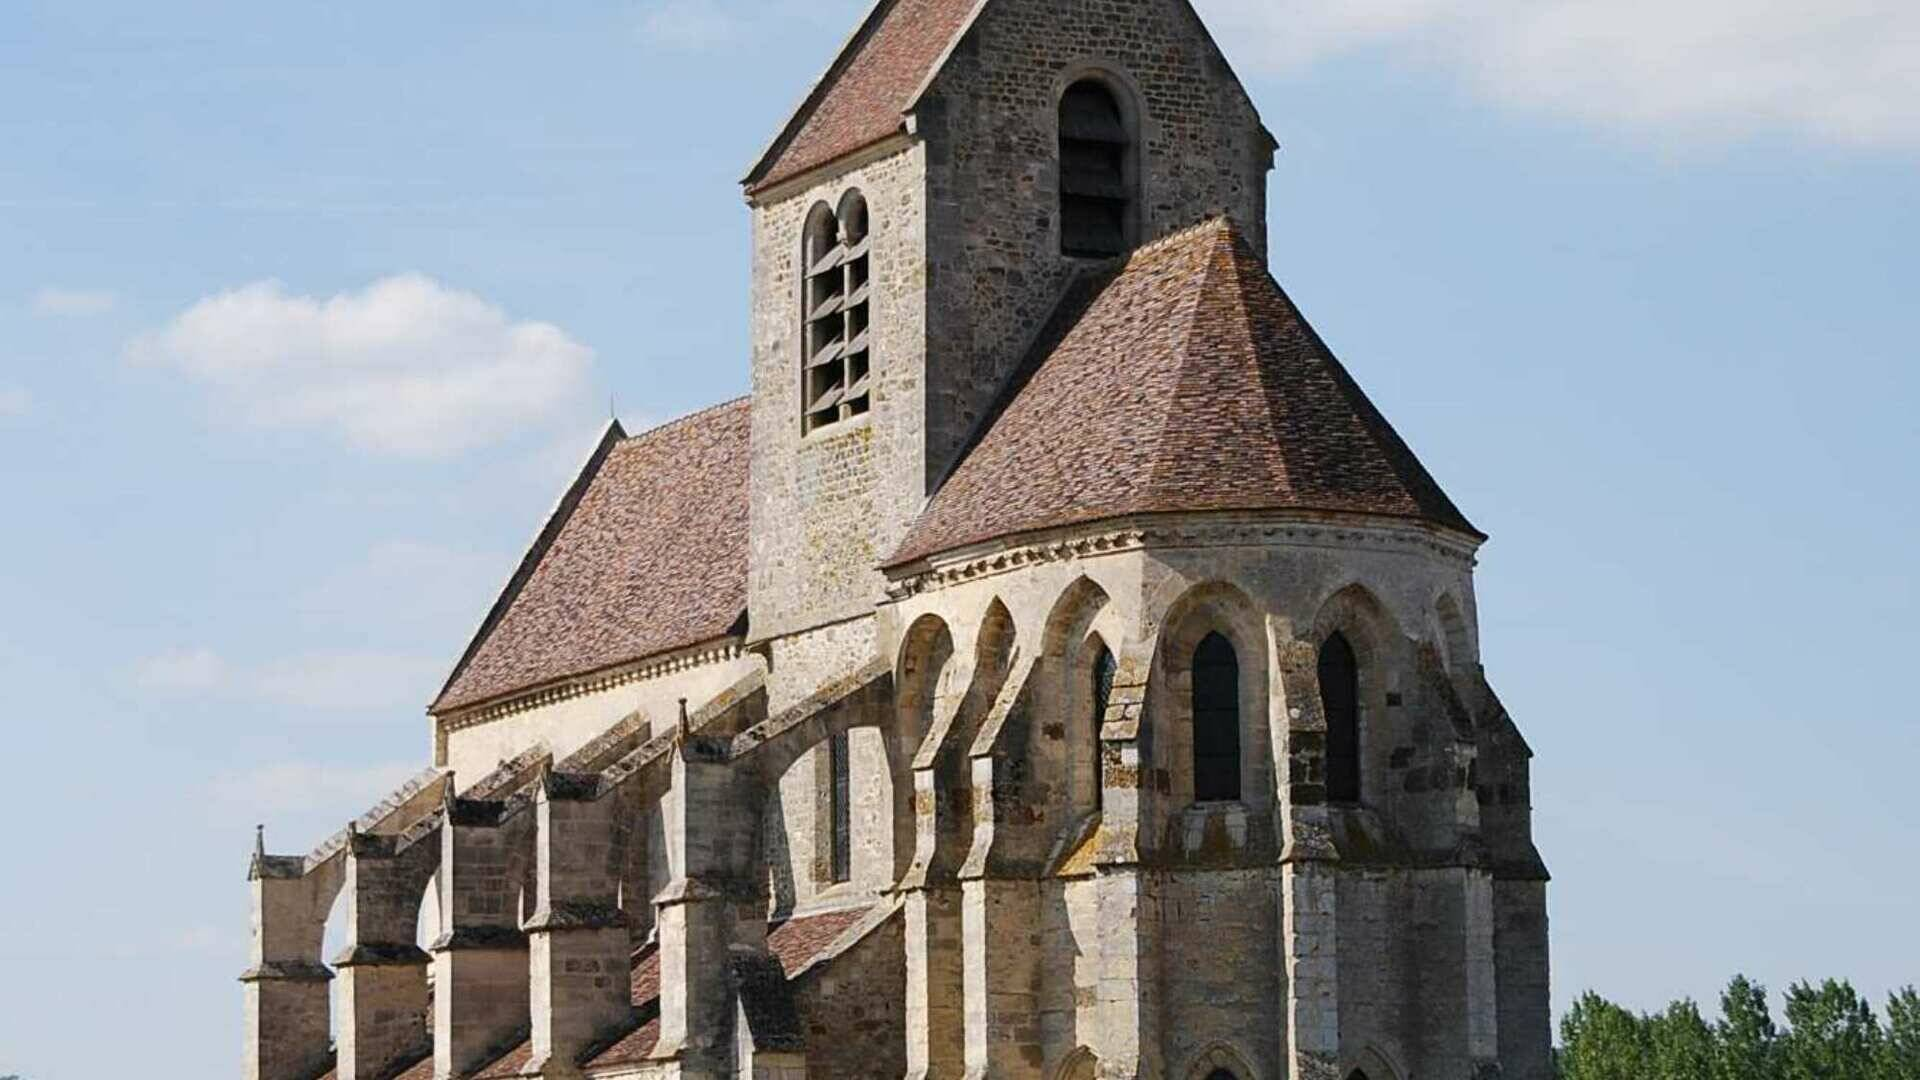 Eglise de Mézy-Moulin